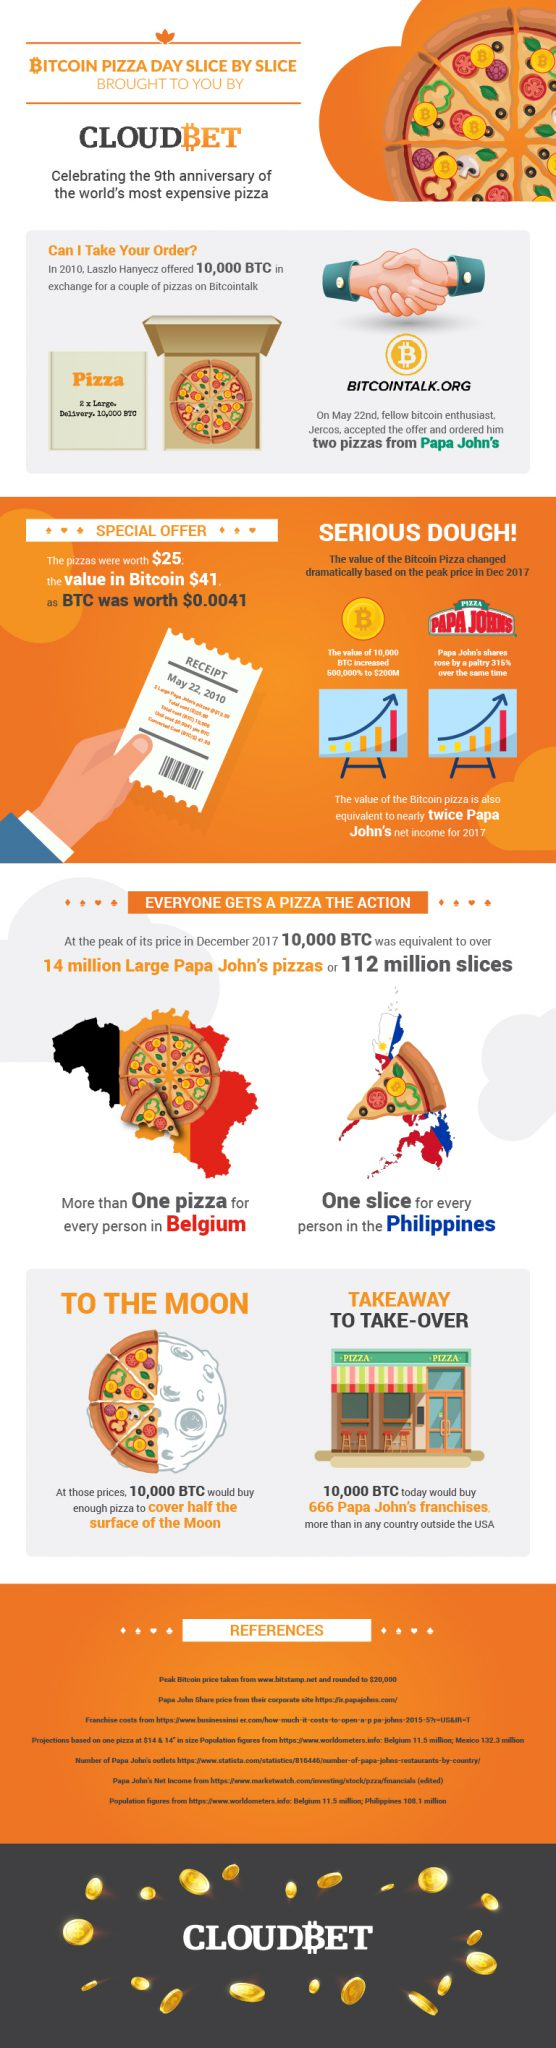 Bitcoin Pizza Day Infographic